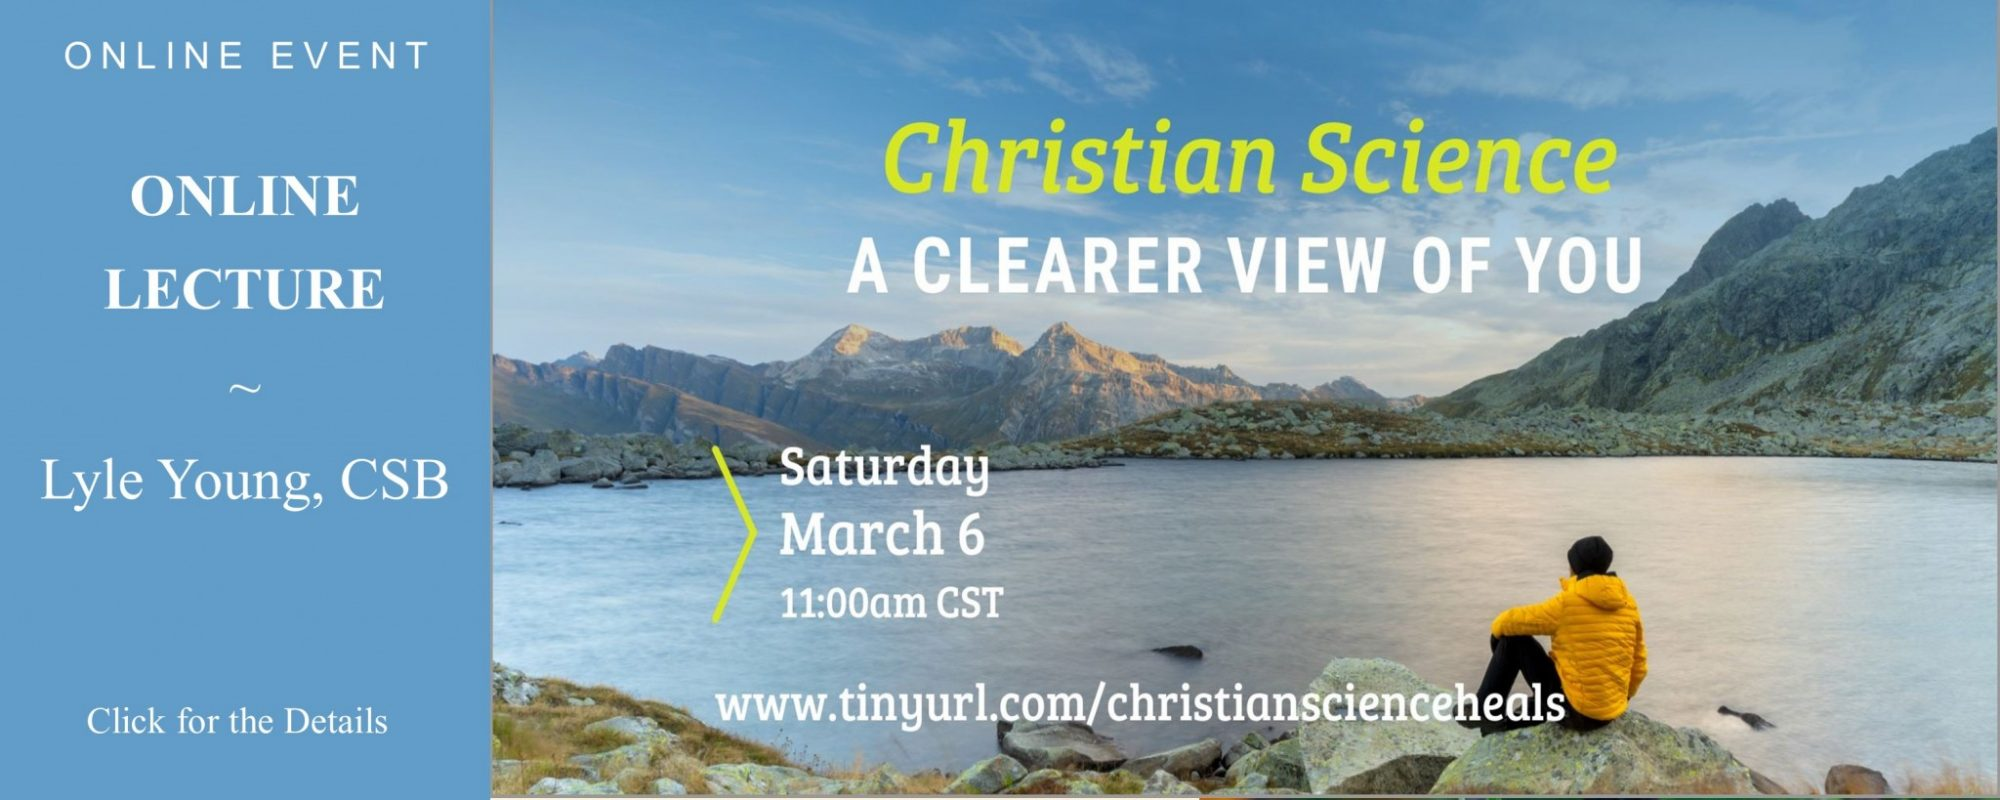 Christian Science — A Clearer View Of You